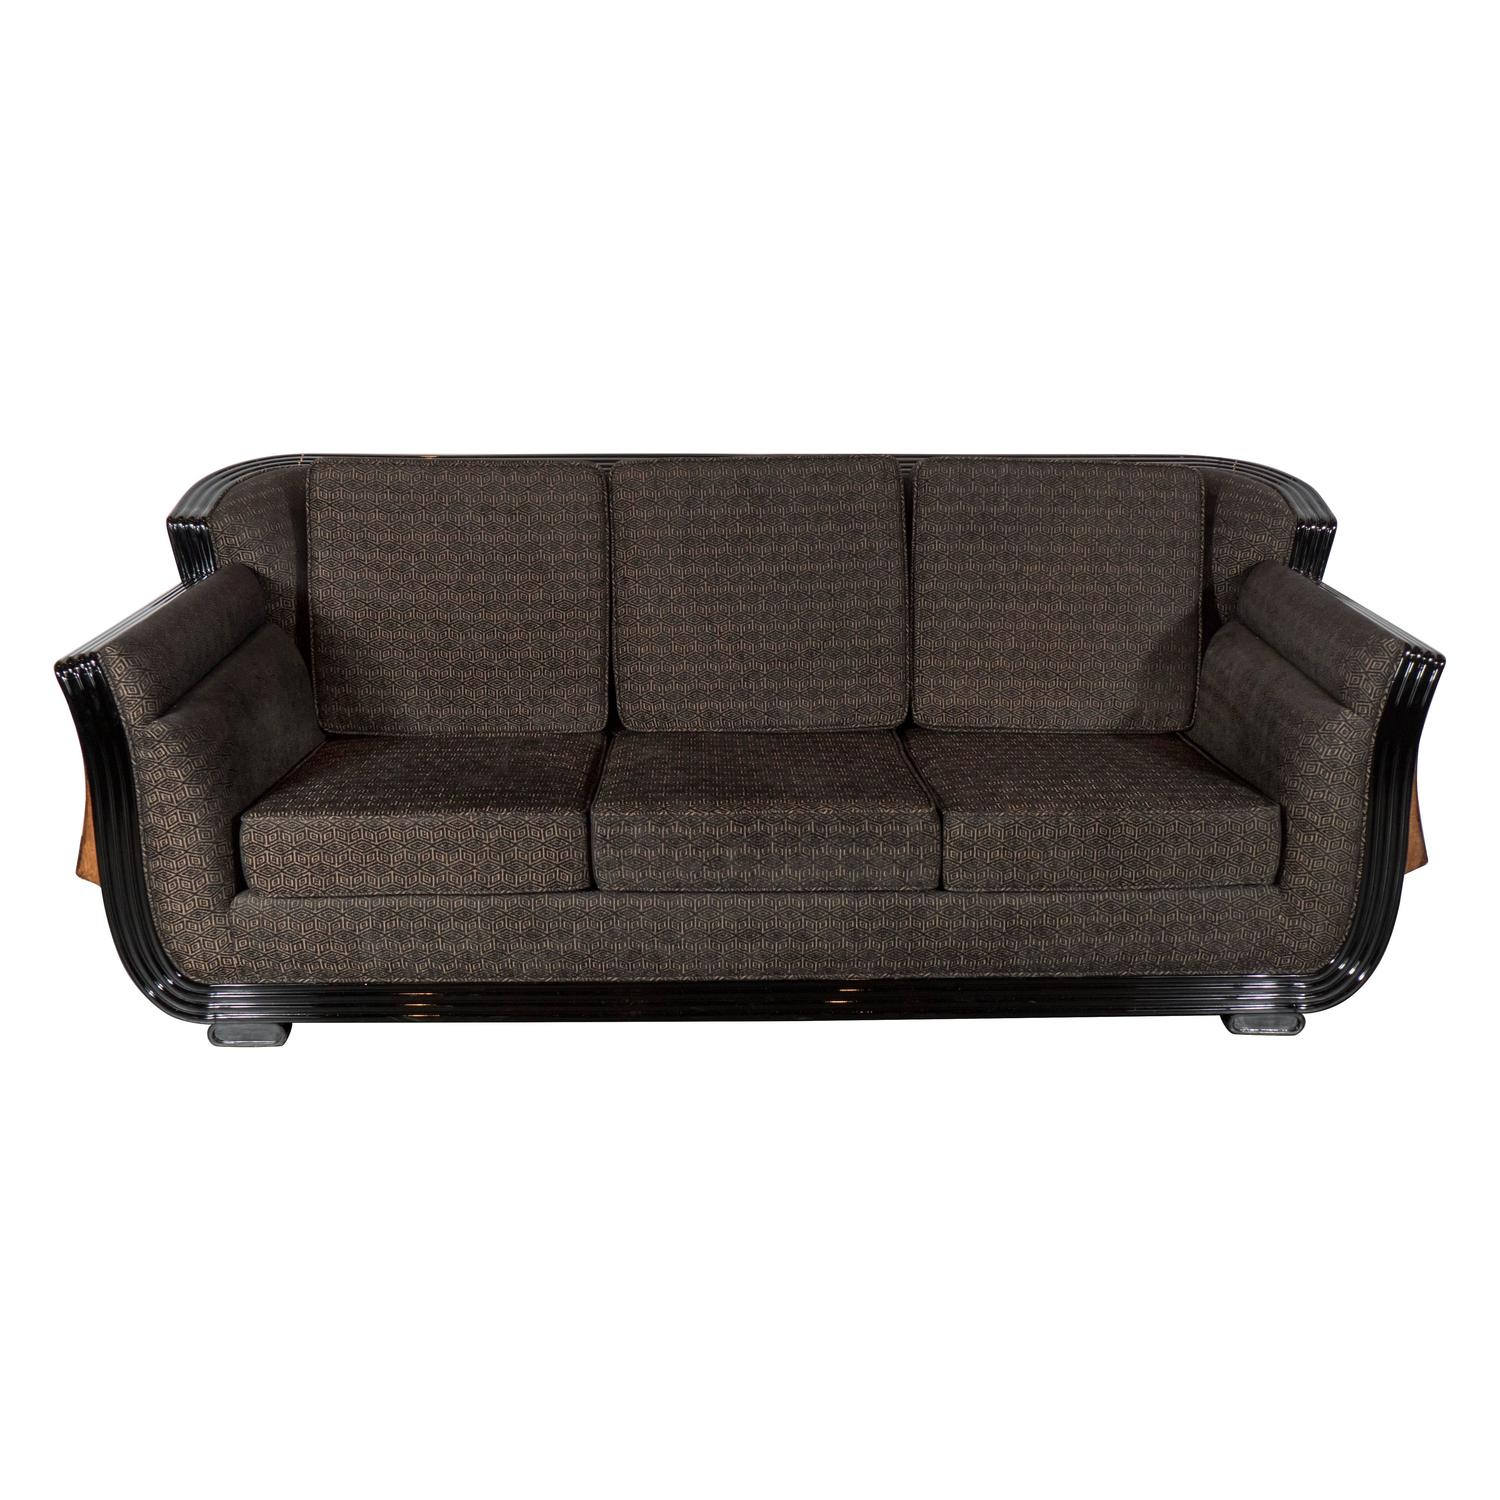 Cubist Art Deco Sofa With Exotic Wood Inlay Design And